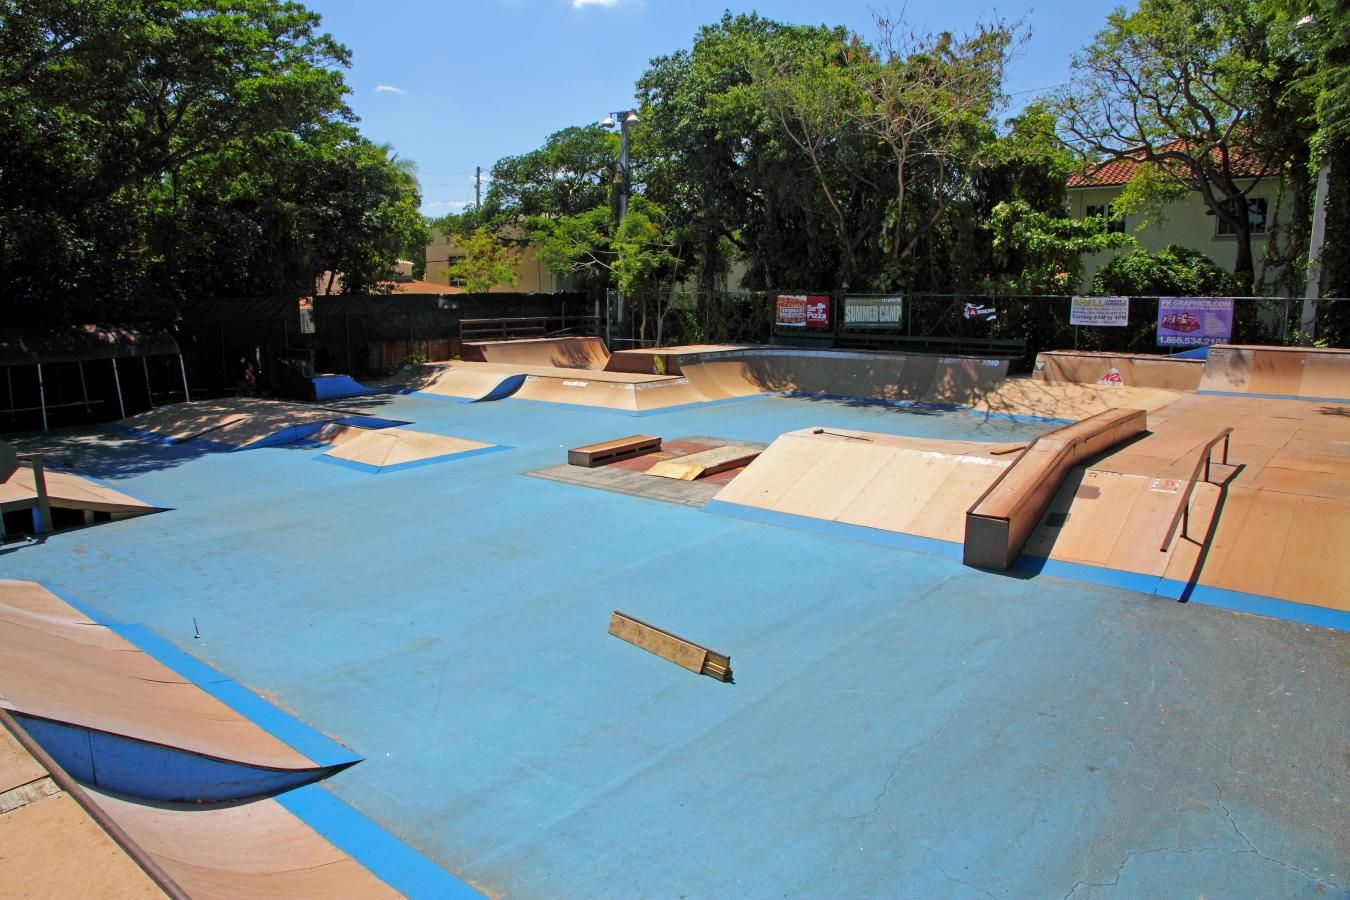 Peacock Park bike, board and skate park